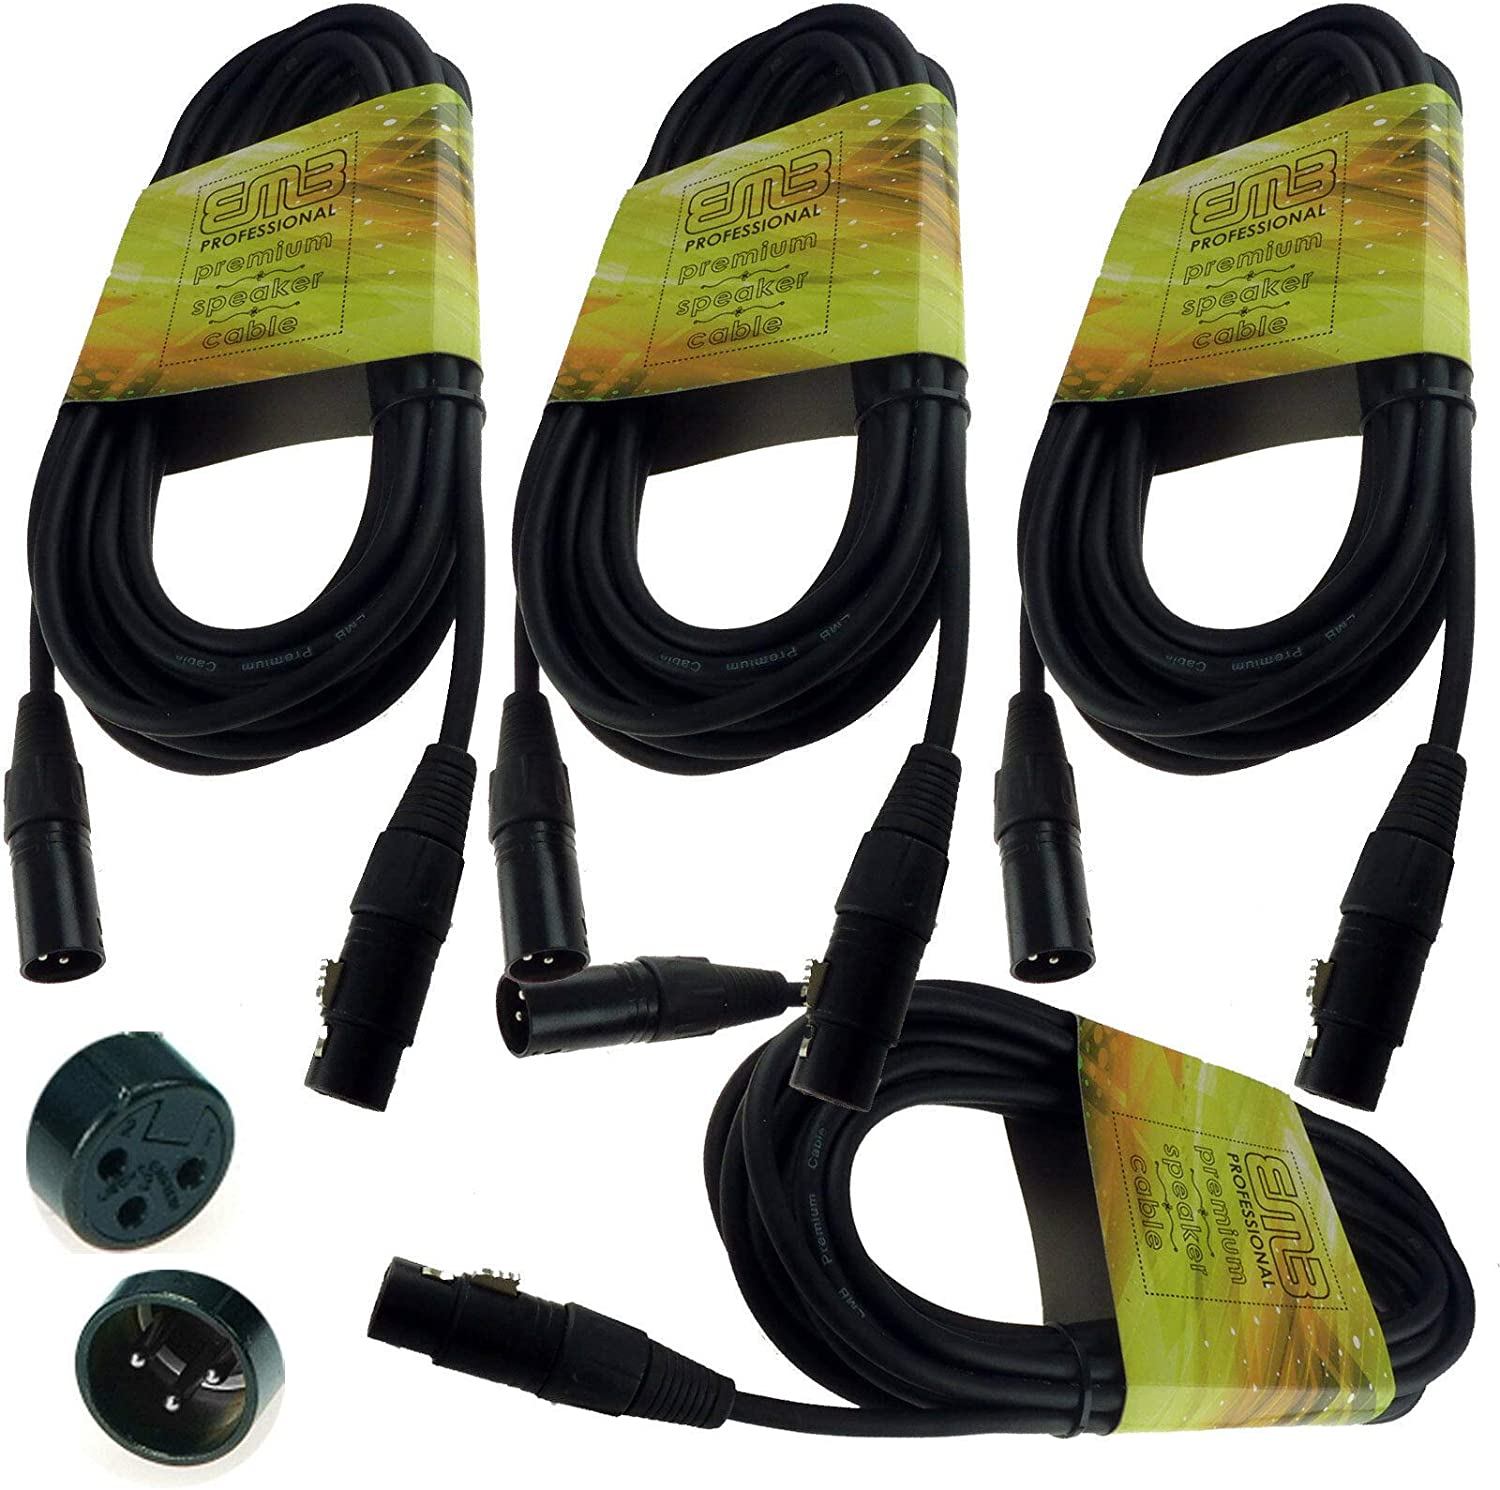 Cheap NEW 4 PACK 15' Feet ft XLR 18 MIC F Store CABLES MICROPHONE wire gauge